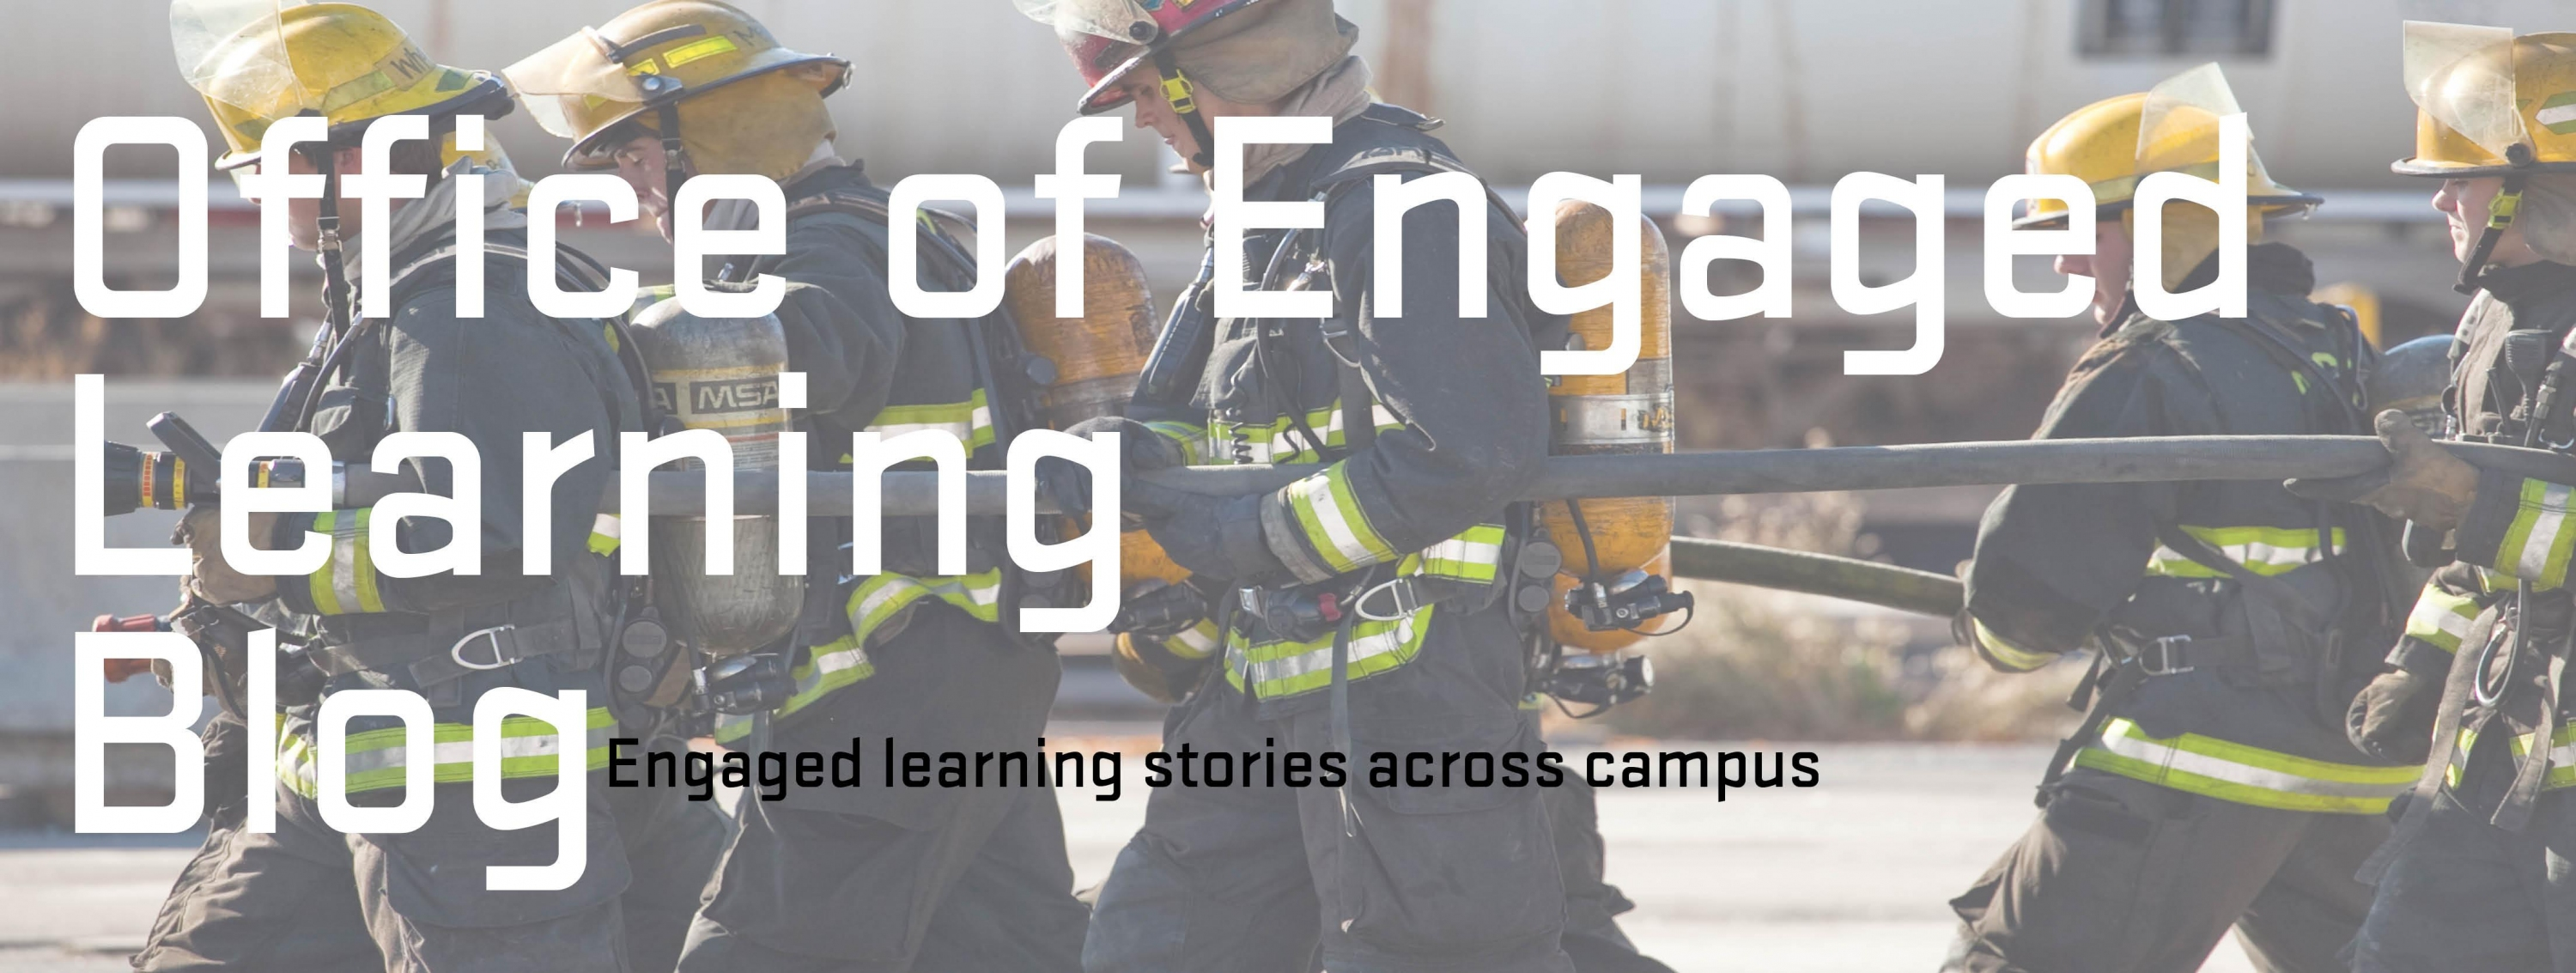 Office of Engaged Learning Blog slider, firefighter image